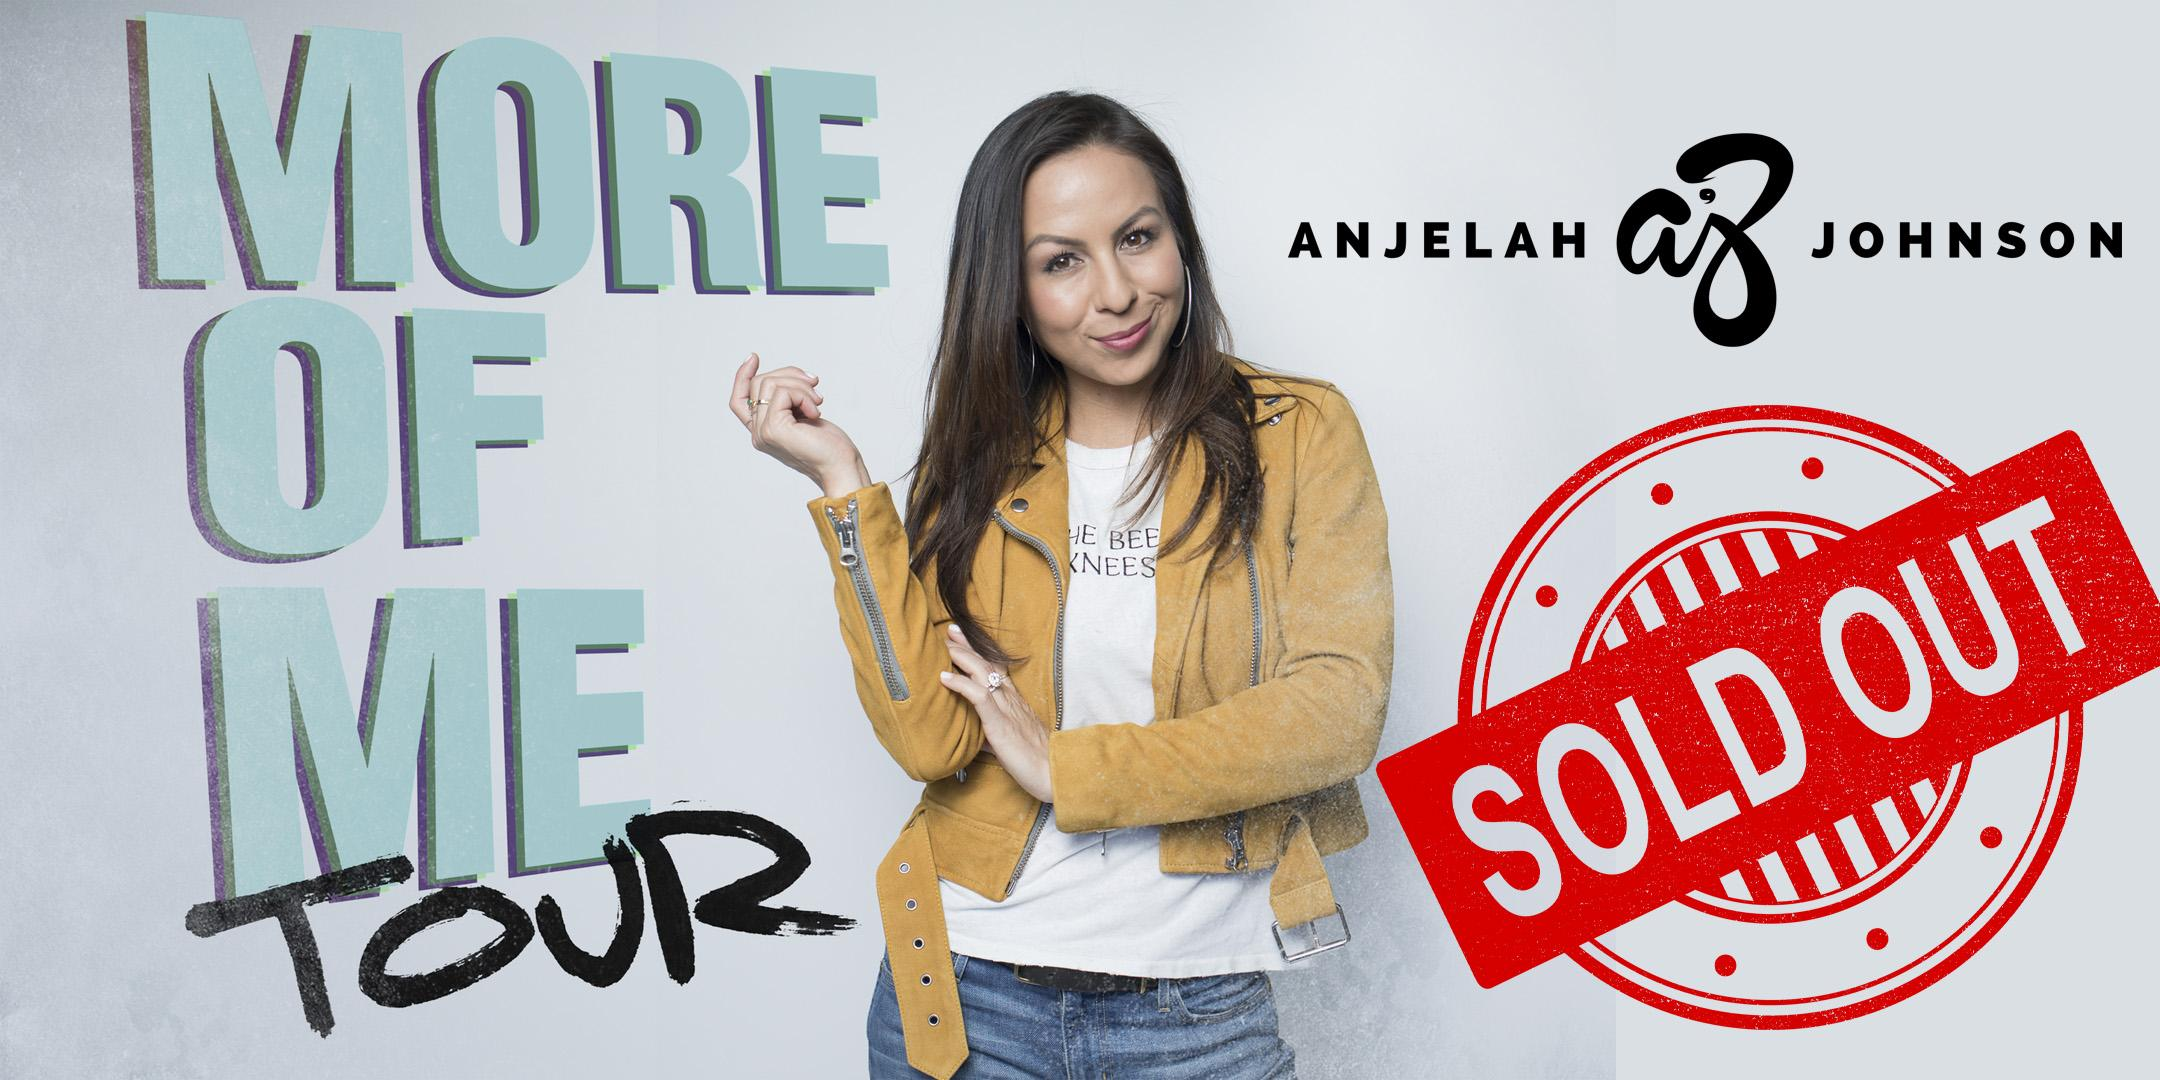 Anjelah Johnson - Friday - March 1st - 7:30 & 9:45 pm SOLD OUT